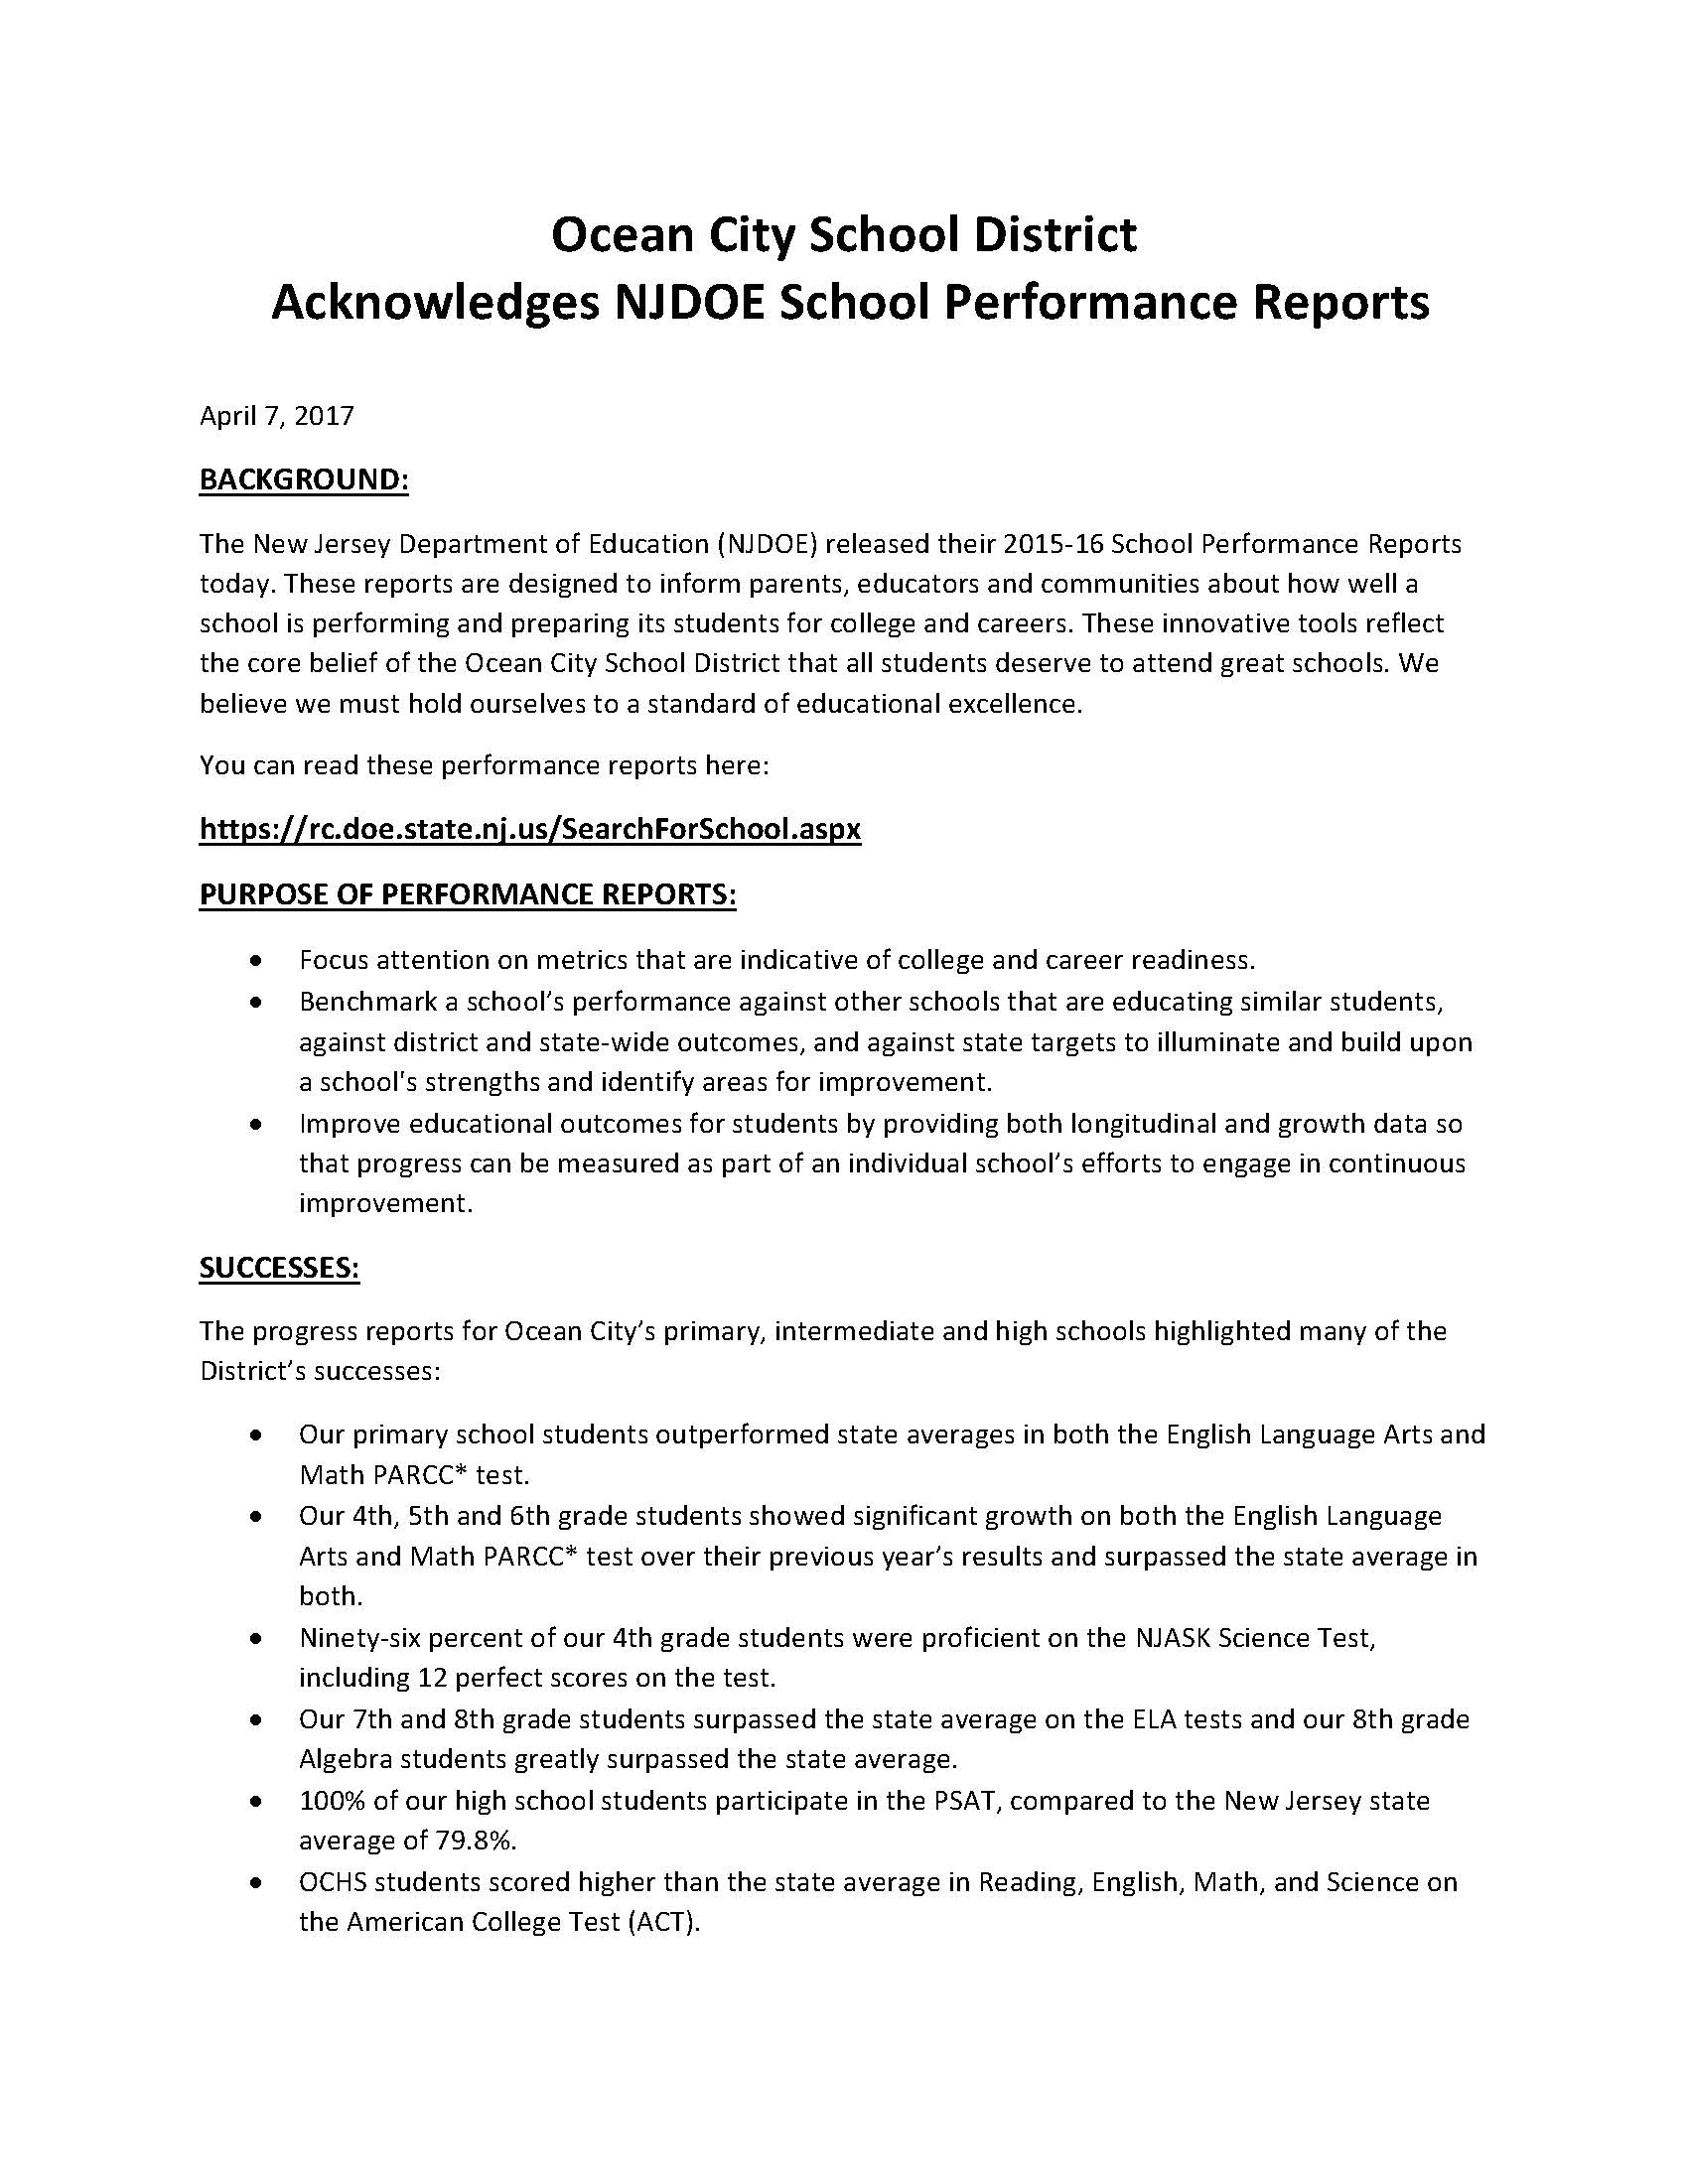 Ocean city intermediate school latest news ocean city school ocean city intermediate school latest news ocean city school district acknowledges njdoe school 1betcityfo Images